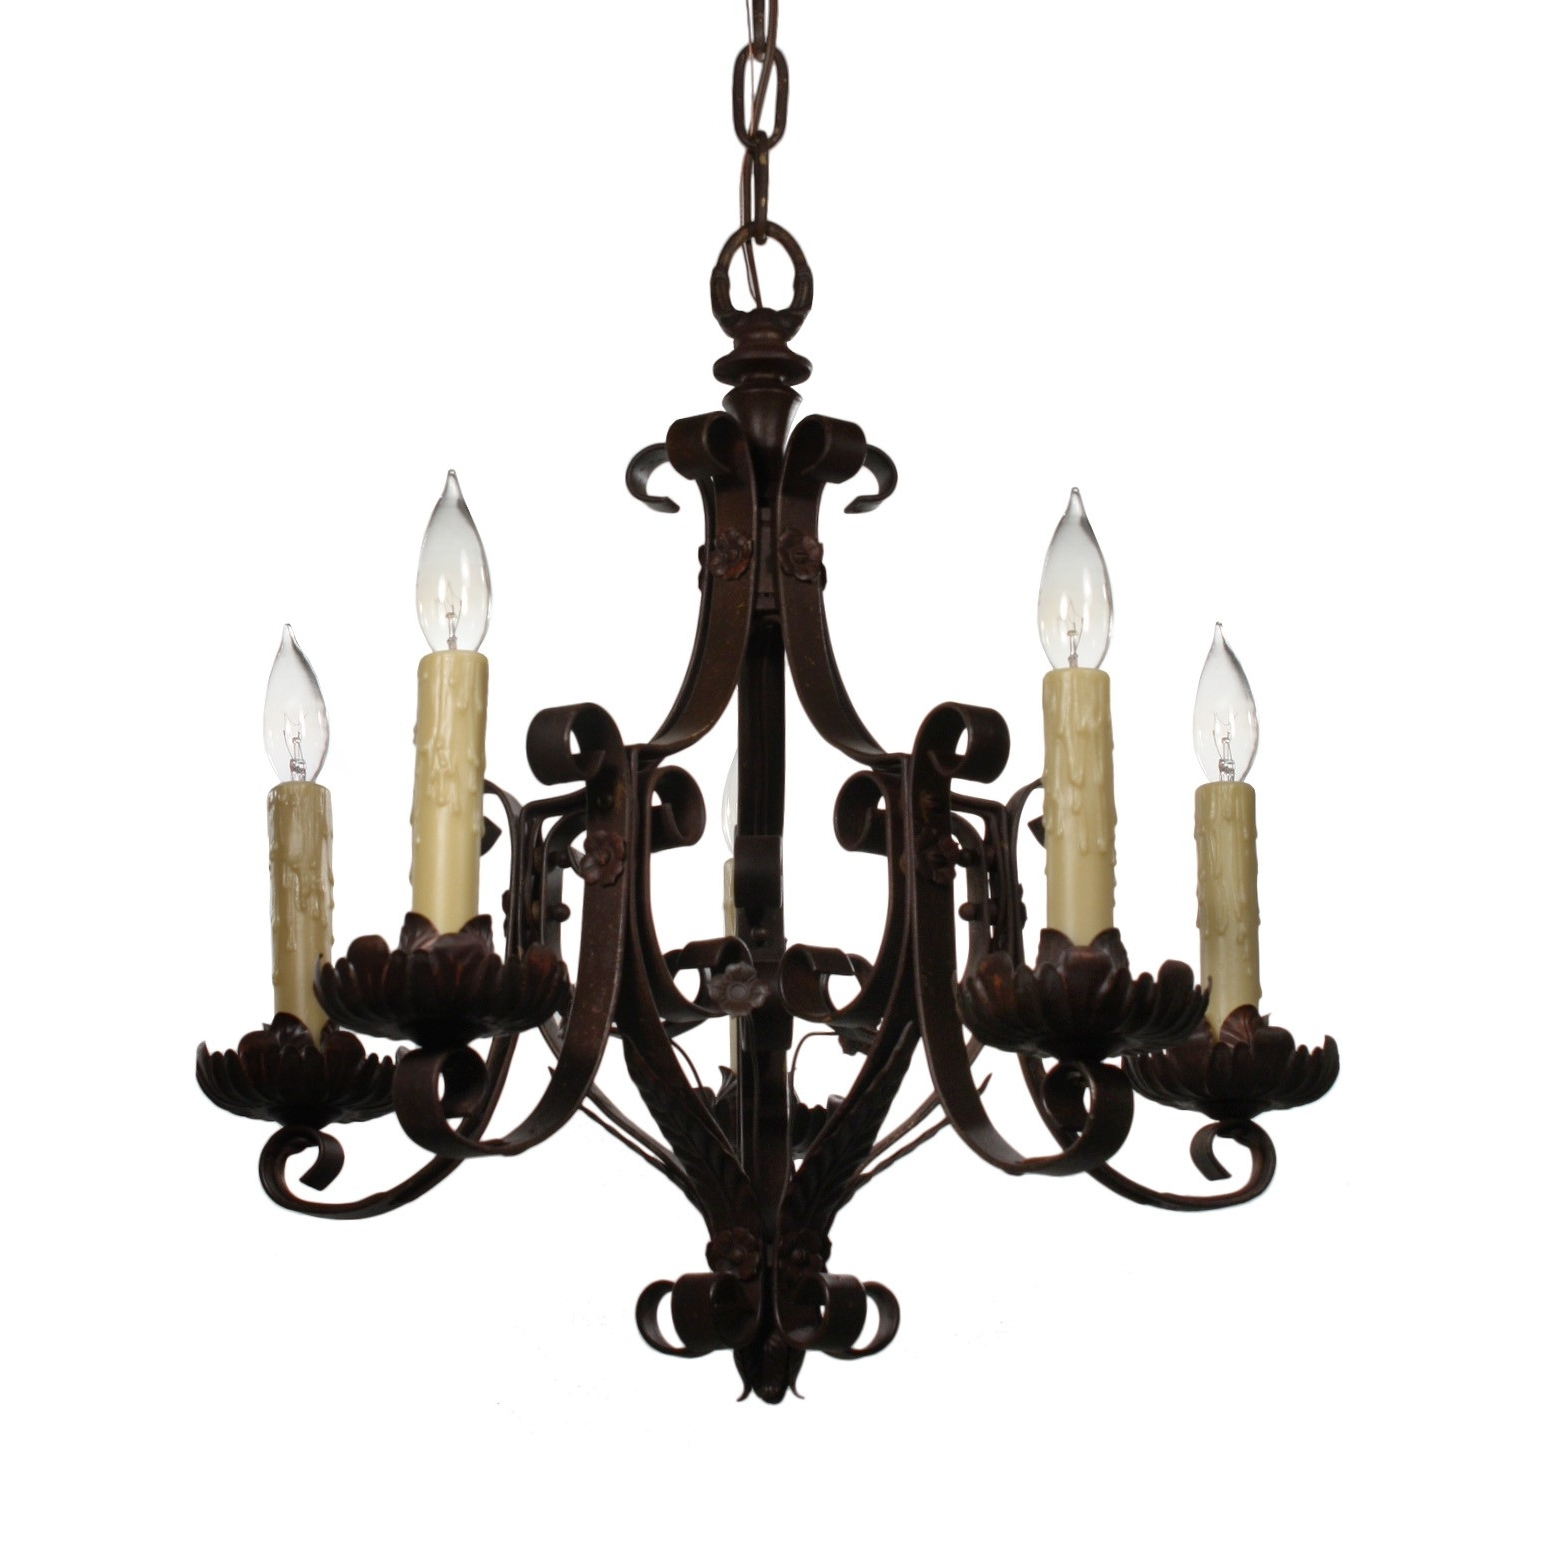 Antique Wrought Iron Chandelier, C.1920S – Preservation Station Intended For Widely Used Wrought Iron Chandelier (Gallery 16 of 20)